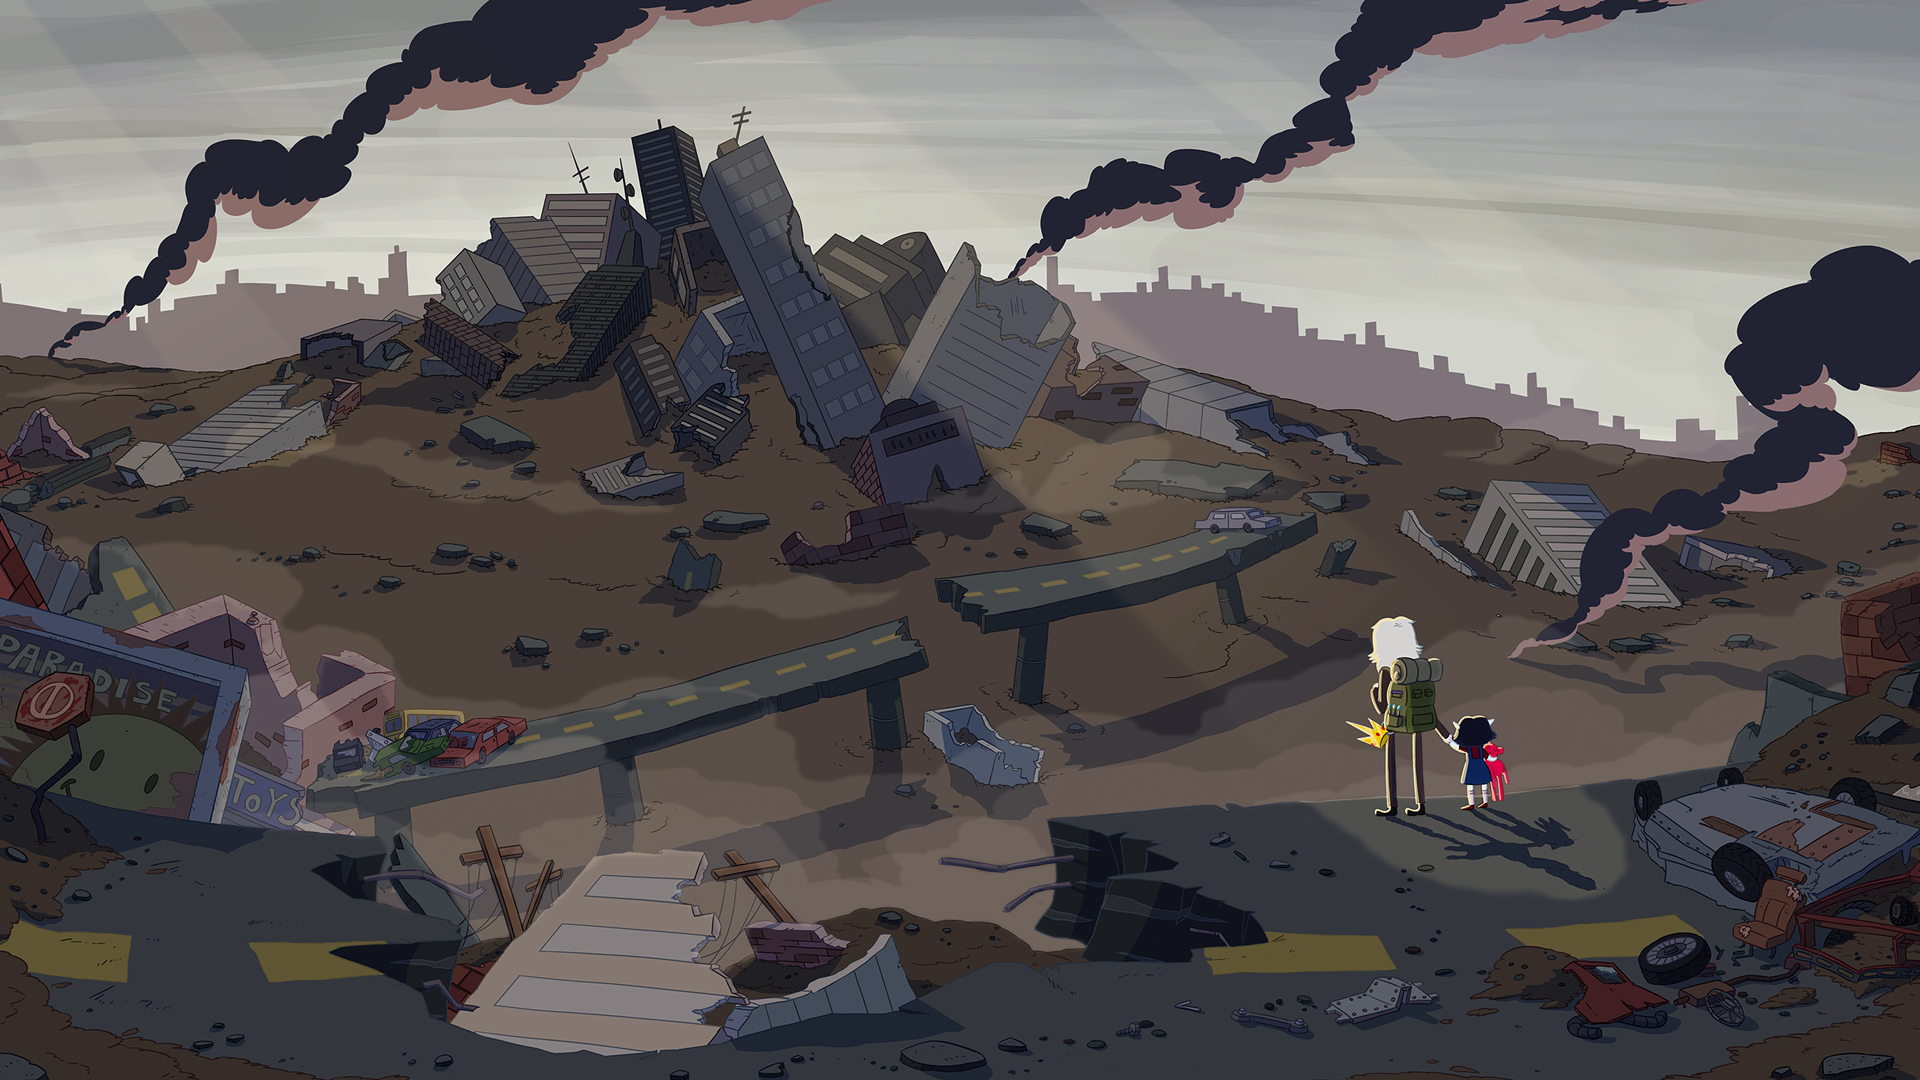 A ruined city smolders in the distance of two figures.